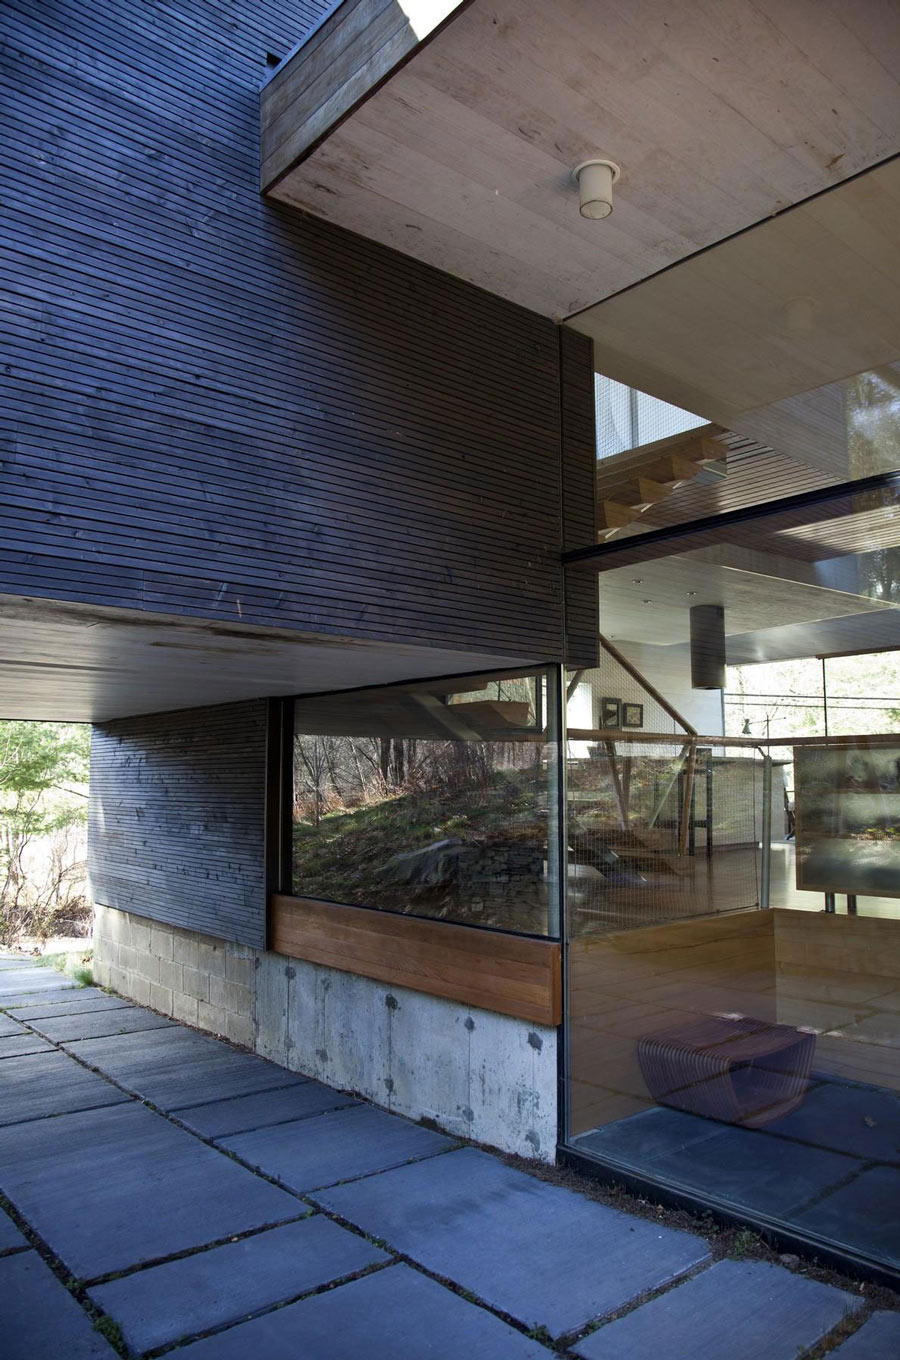 Glass Walls, Wood Cladding, Rural Retreat in Bantam, Connecticut